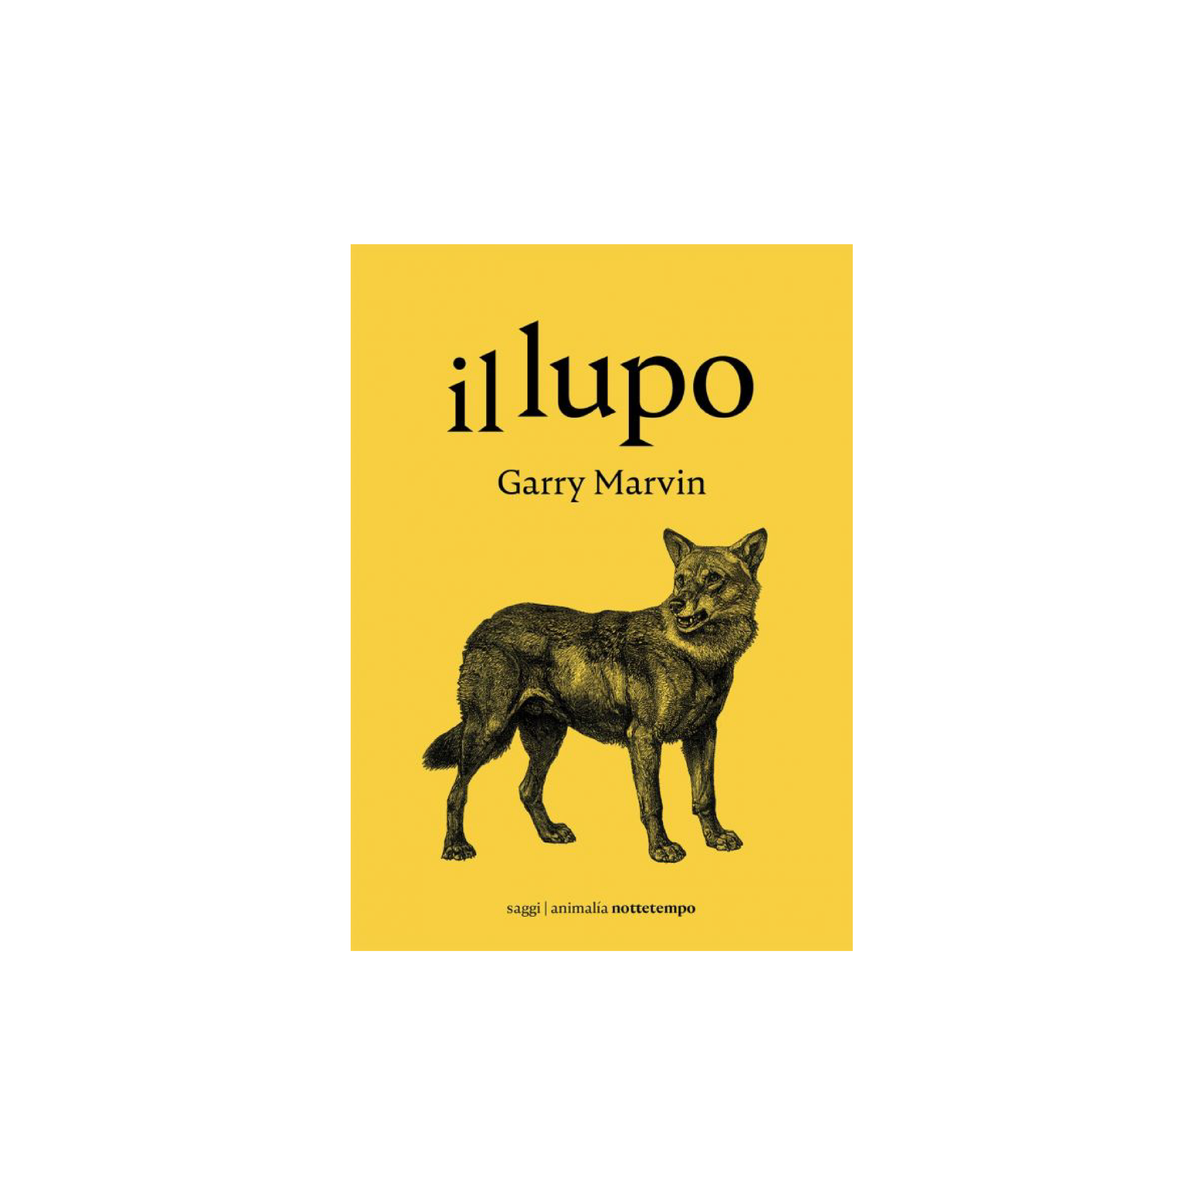 Image of Il lupo